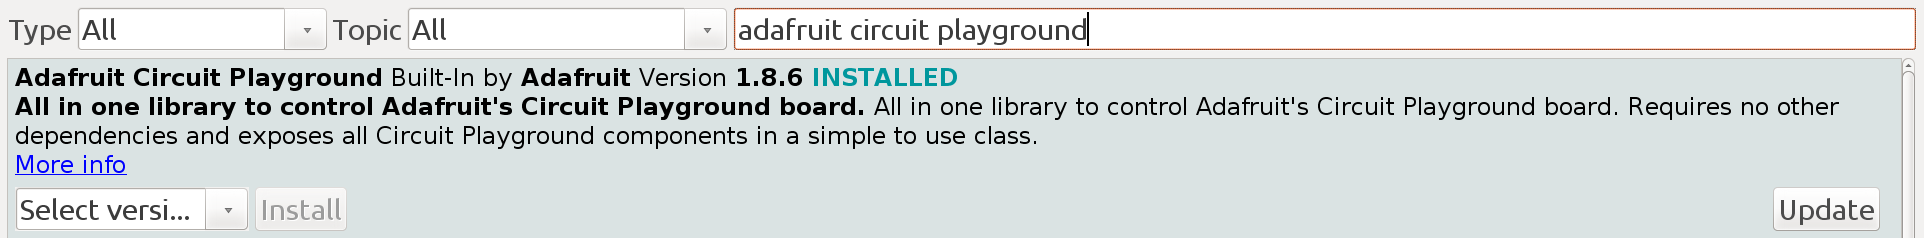 adafruit_products_circuit_playground.png